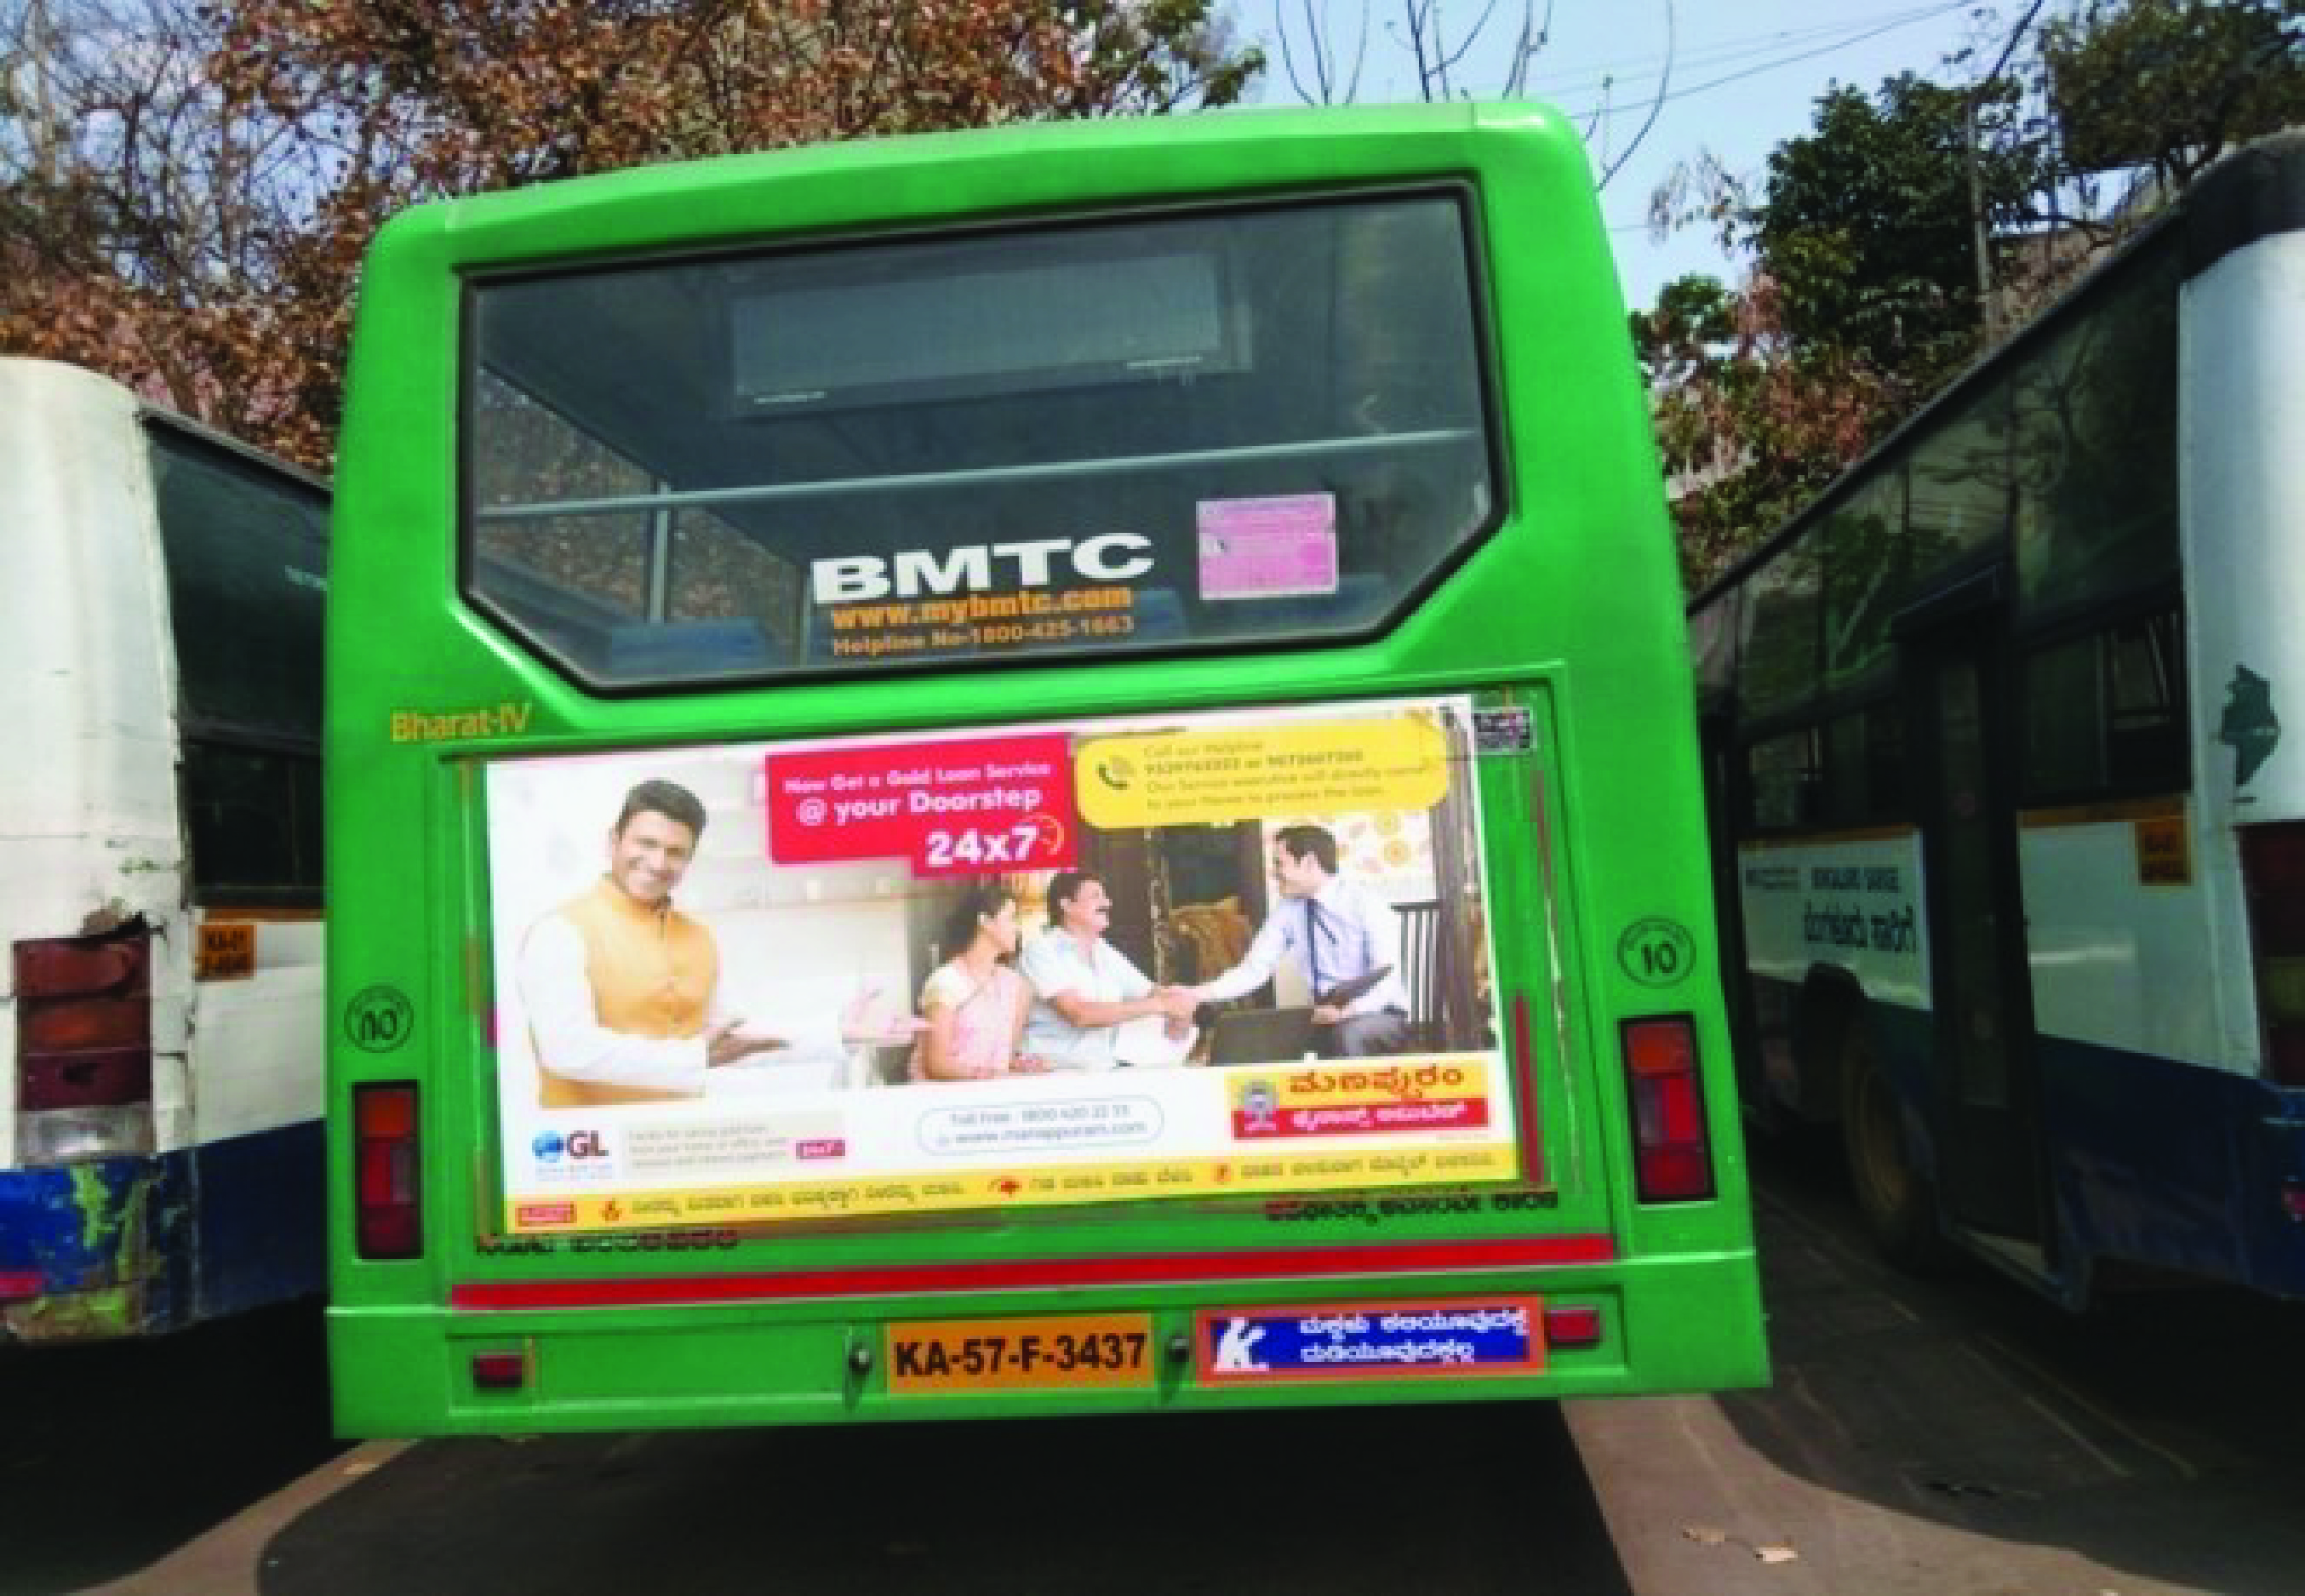 BMTC Bus Back Panel Branding in Bangalore